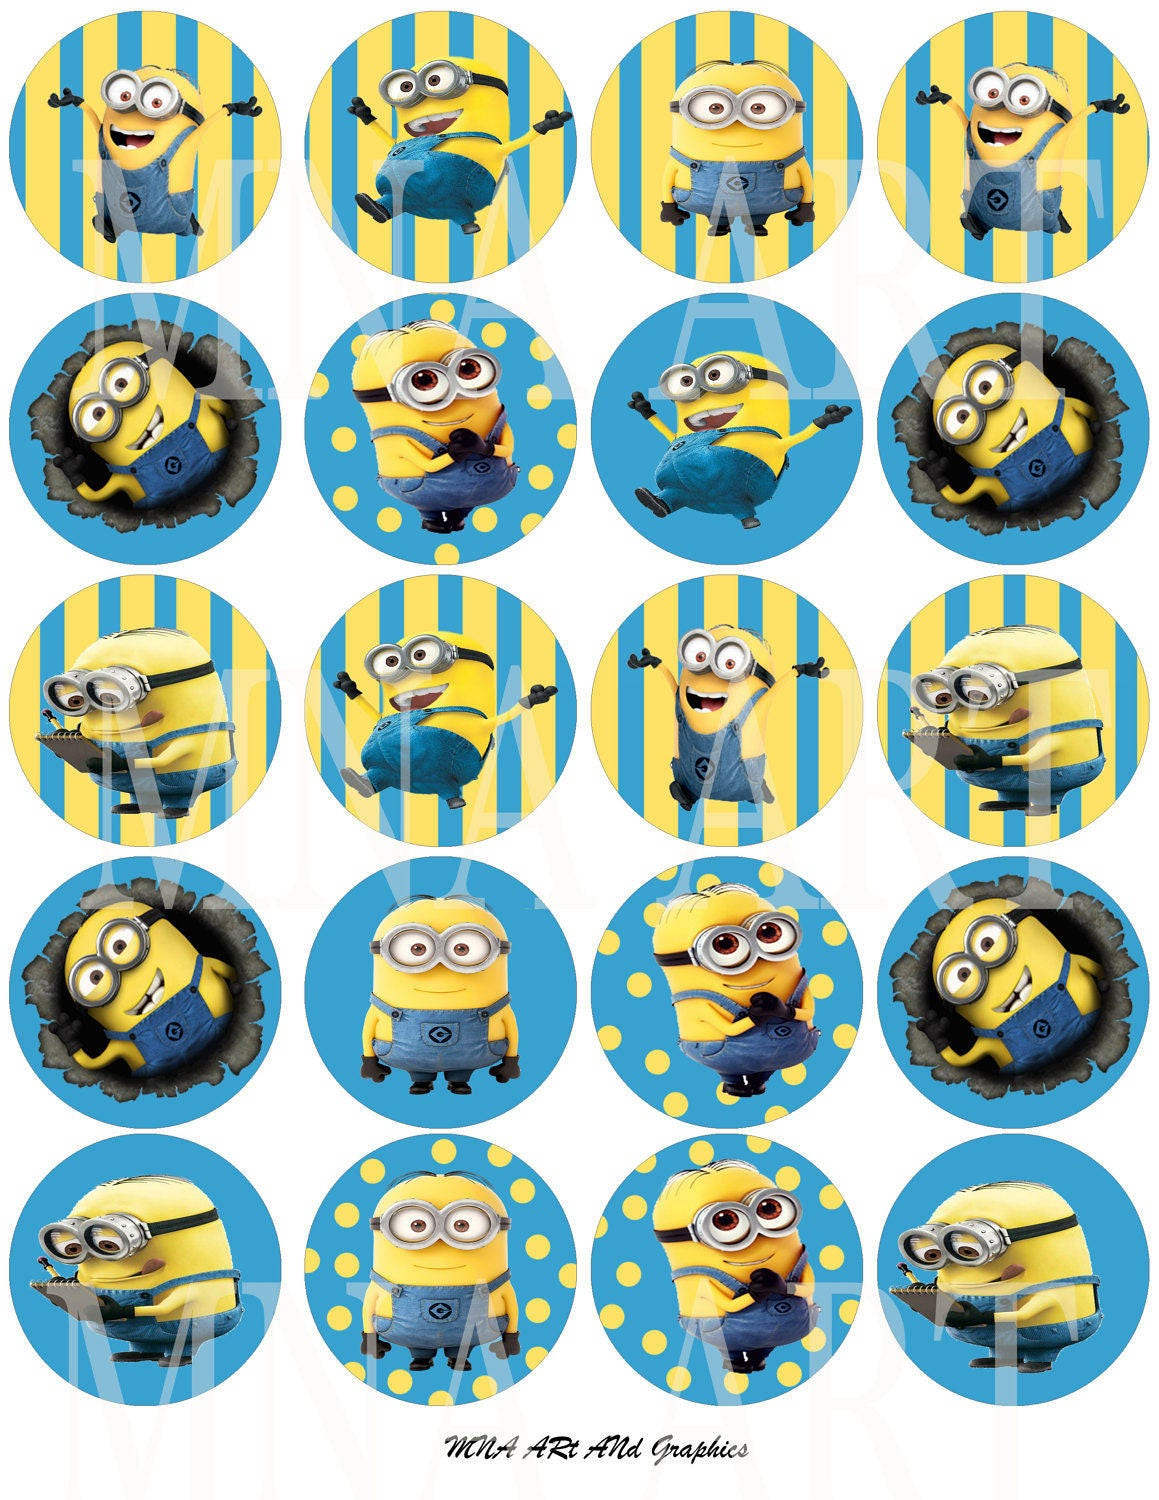 Last Saturday we finally celebrated our daughter's 6th birthday with a Despicable Me Minion theme. It was a whirlwind day of fun, food and games with 13 little Minion friends! I only had about 2 weeks to plan and execute, so almost all of the decorations were easy DIY projects thanks to all of.